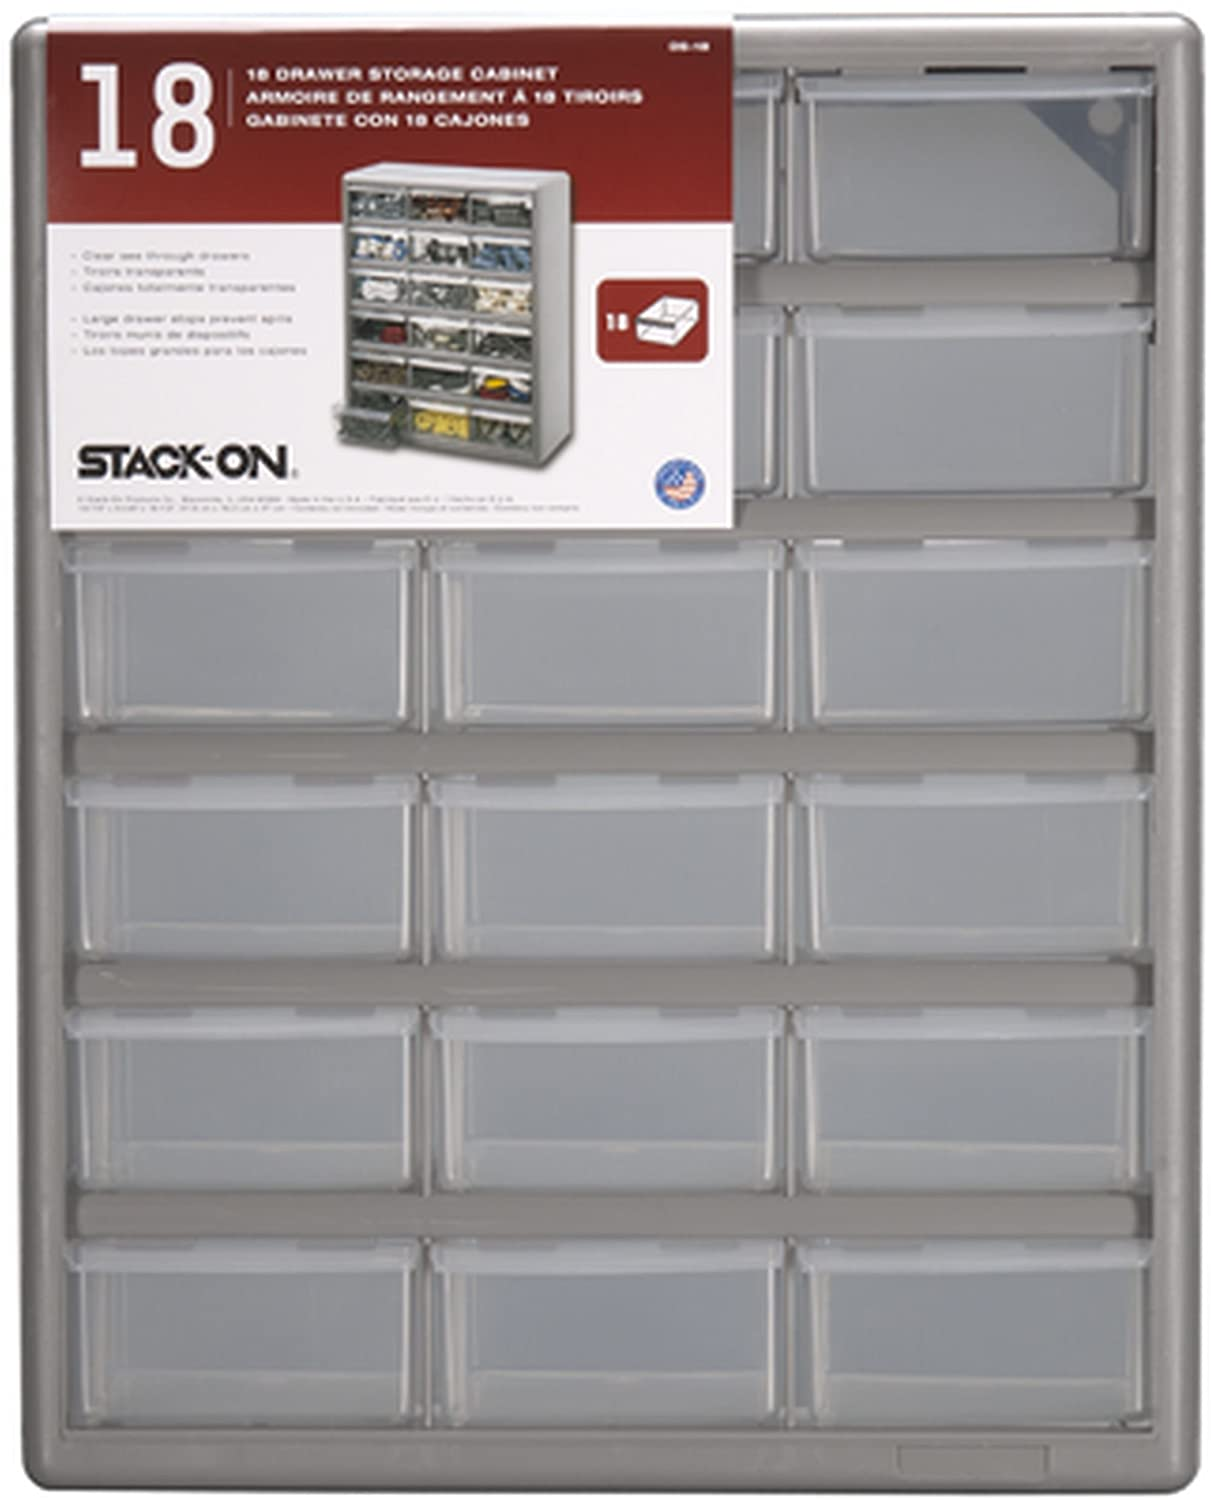 Storage Bin Cabinet Amazoncom Stack On Ds 18 18 Drawer Storage Cabinet Home Improvement